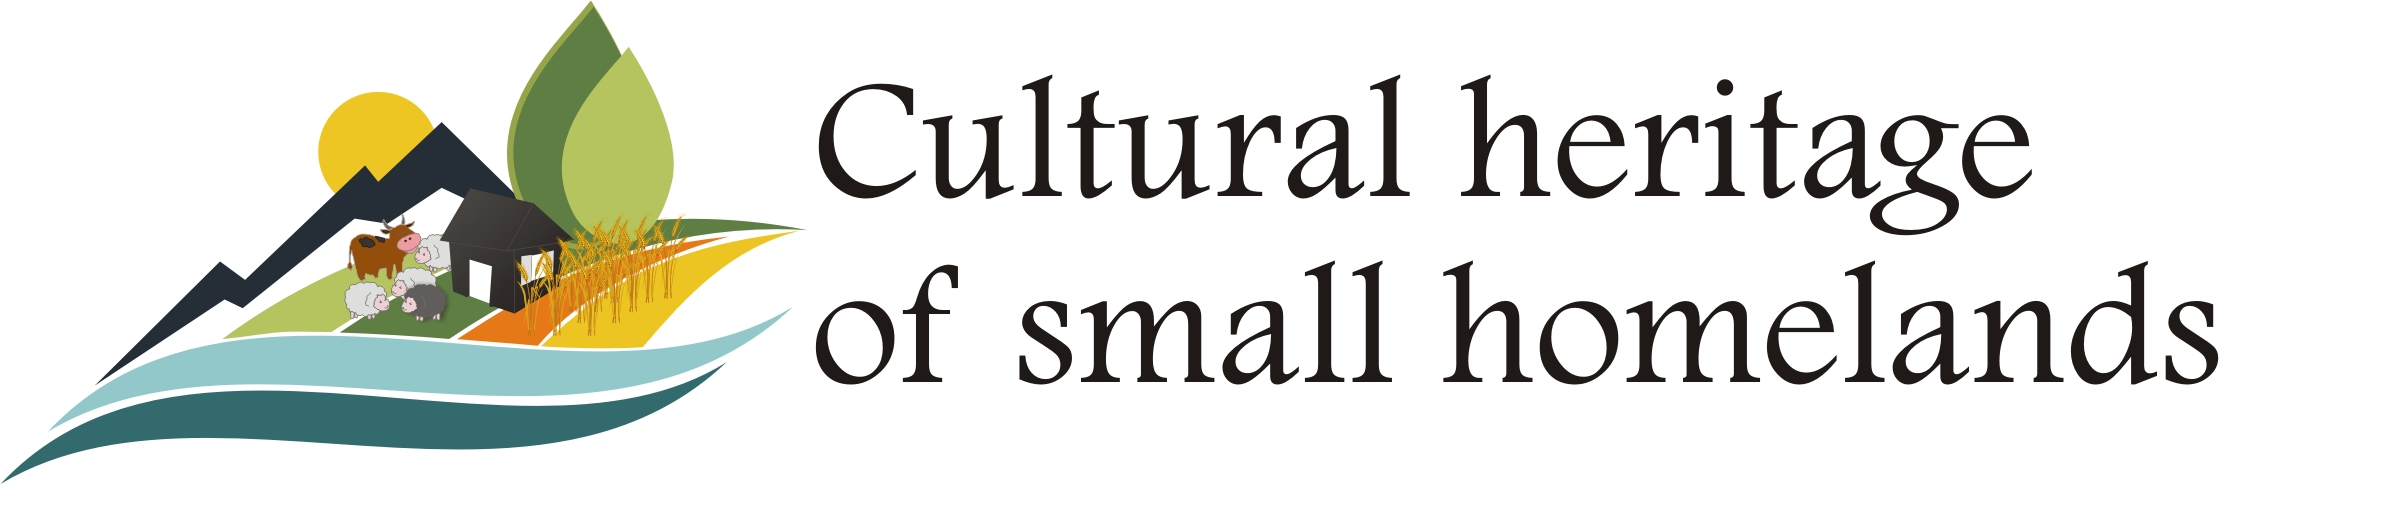 Cultural heritage of small homelands